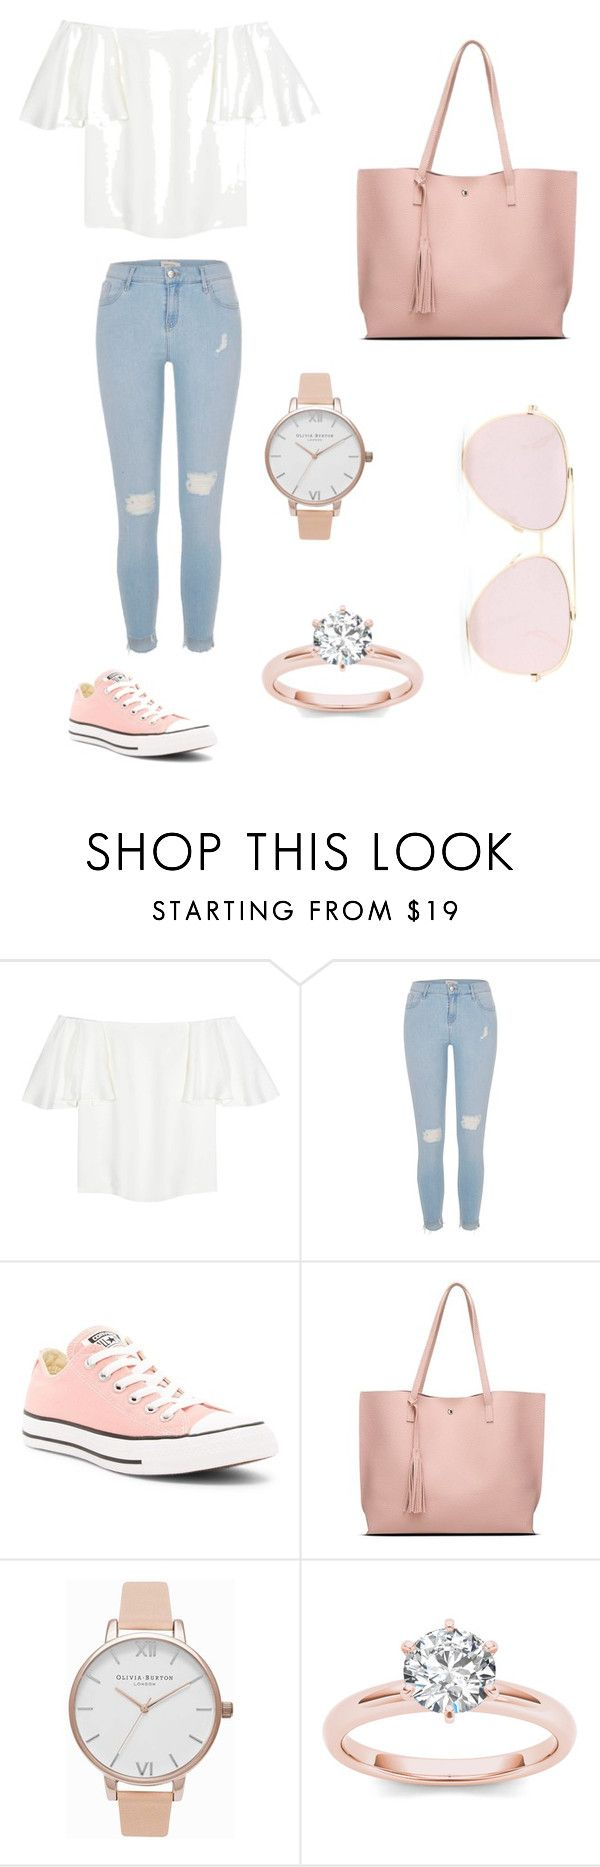 """""""Untitled #1"""" by rawnaqali ❤ liked on Polyvore featuring Valentino, River Island, Converse and Olivia Burton"""